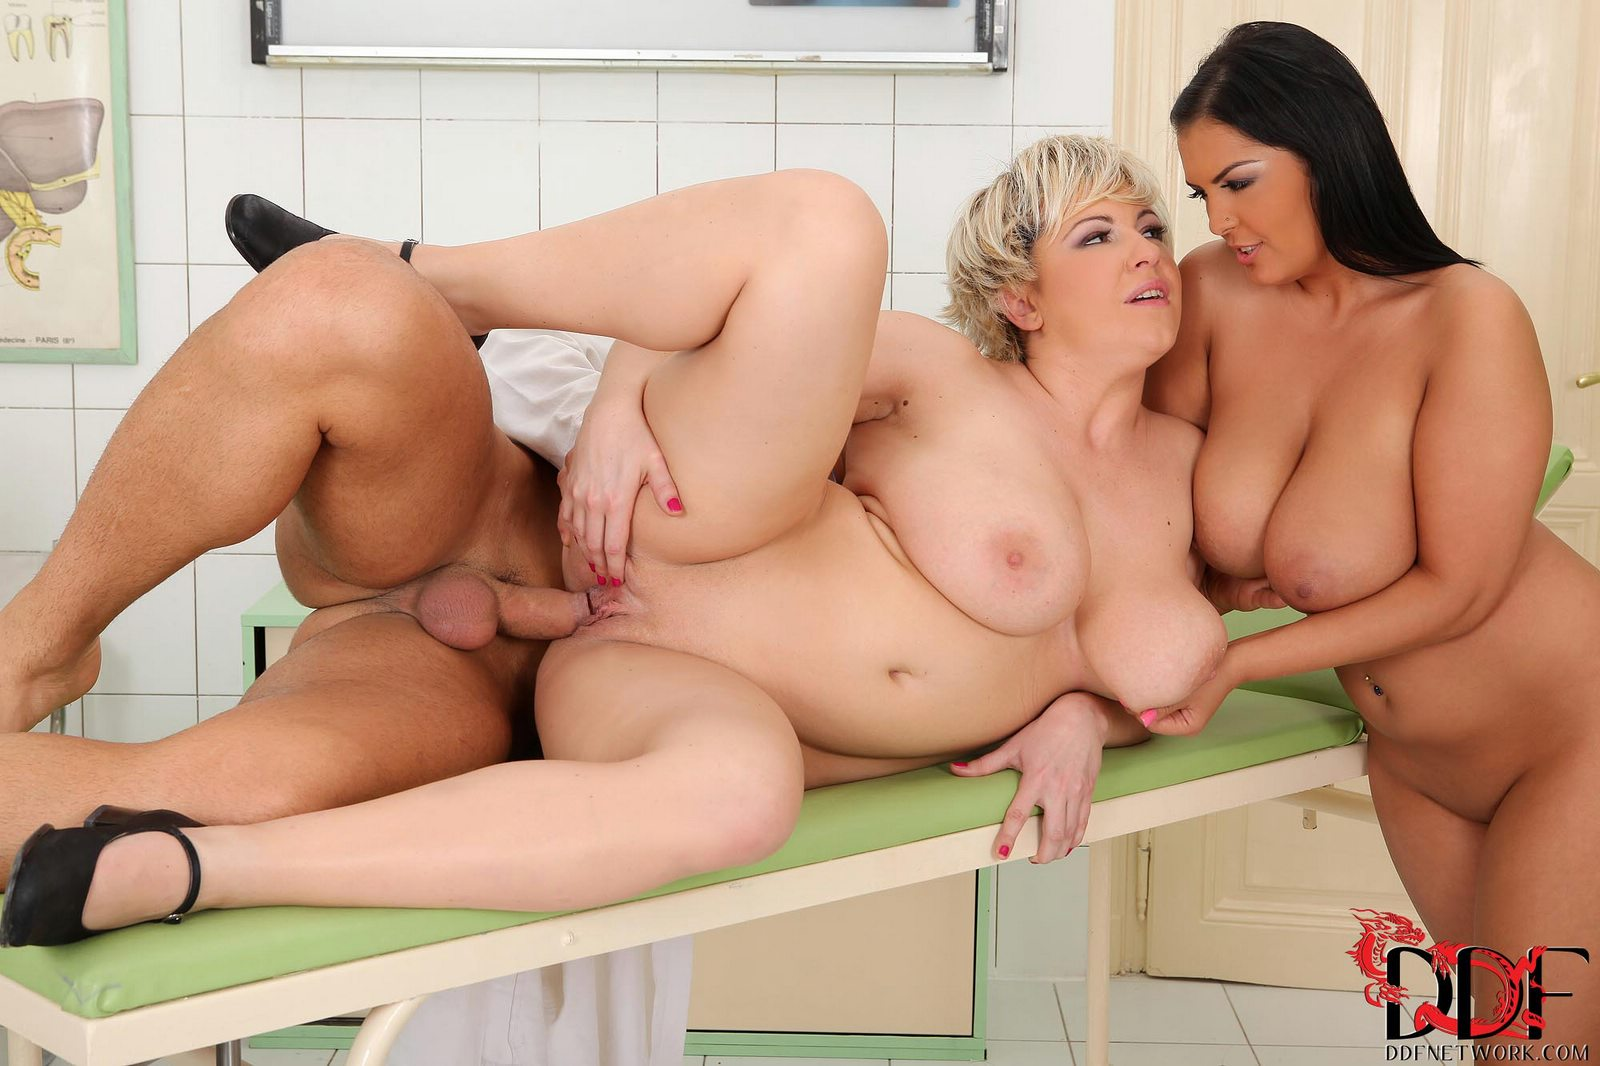 Can boobies threesome sandra have thought and